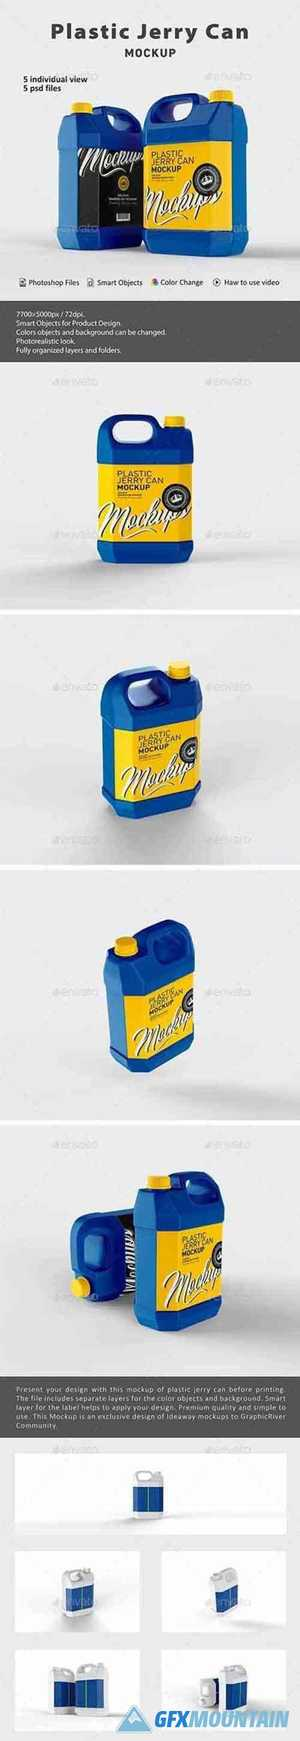 Plastic Jerry Can Mockup 26561750